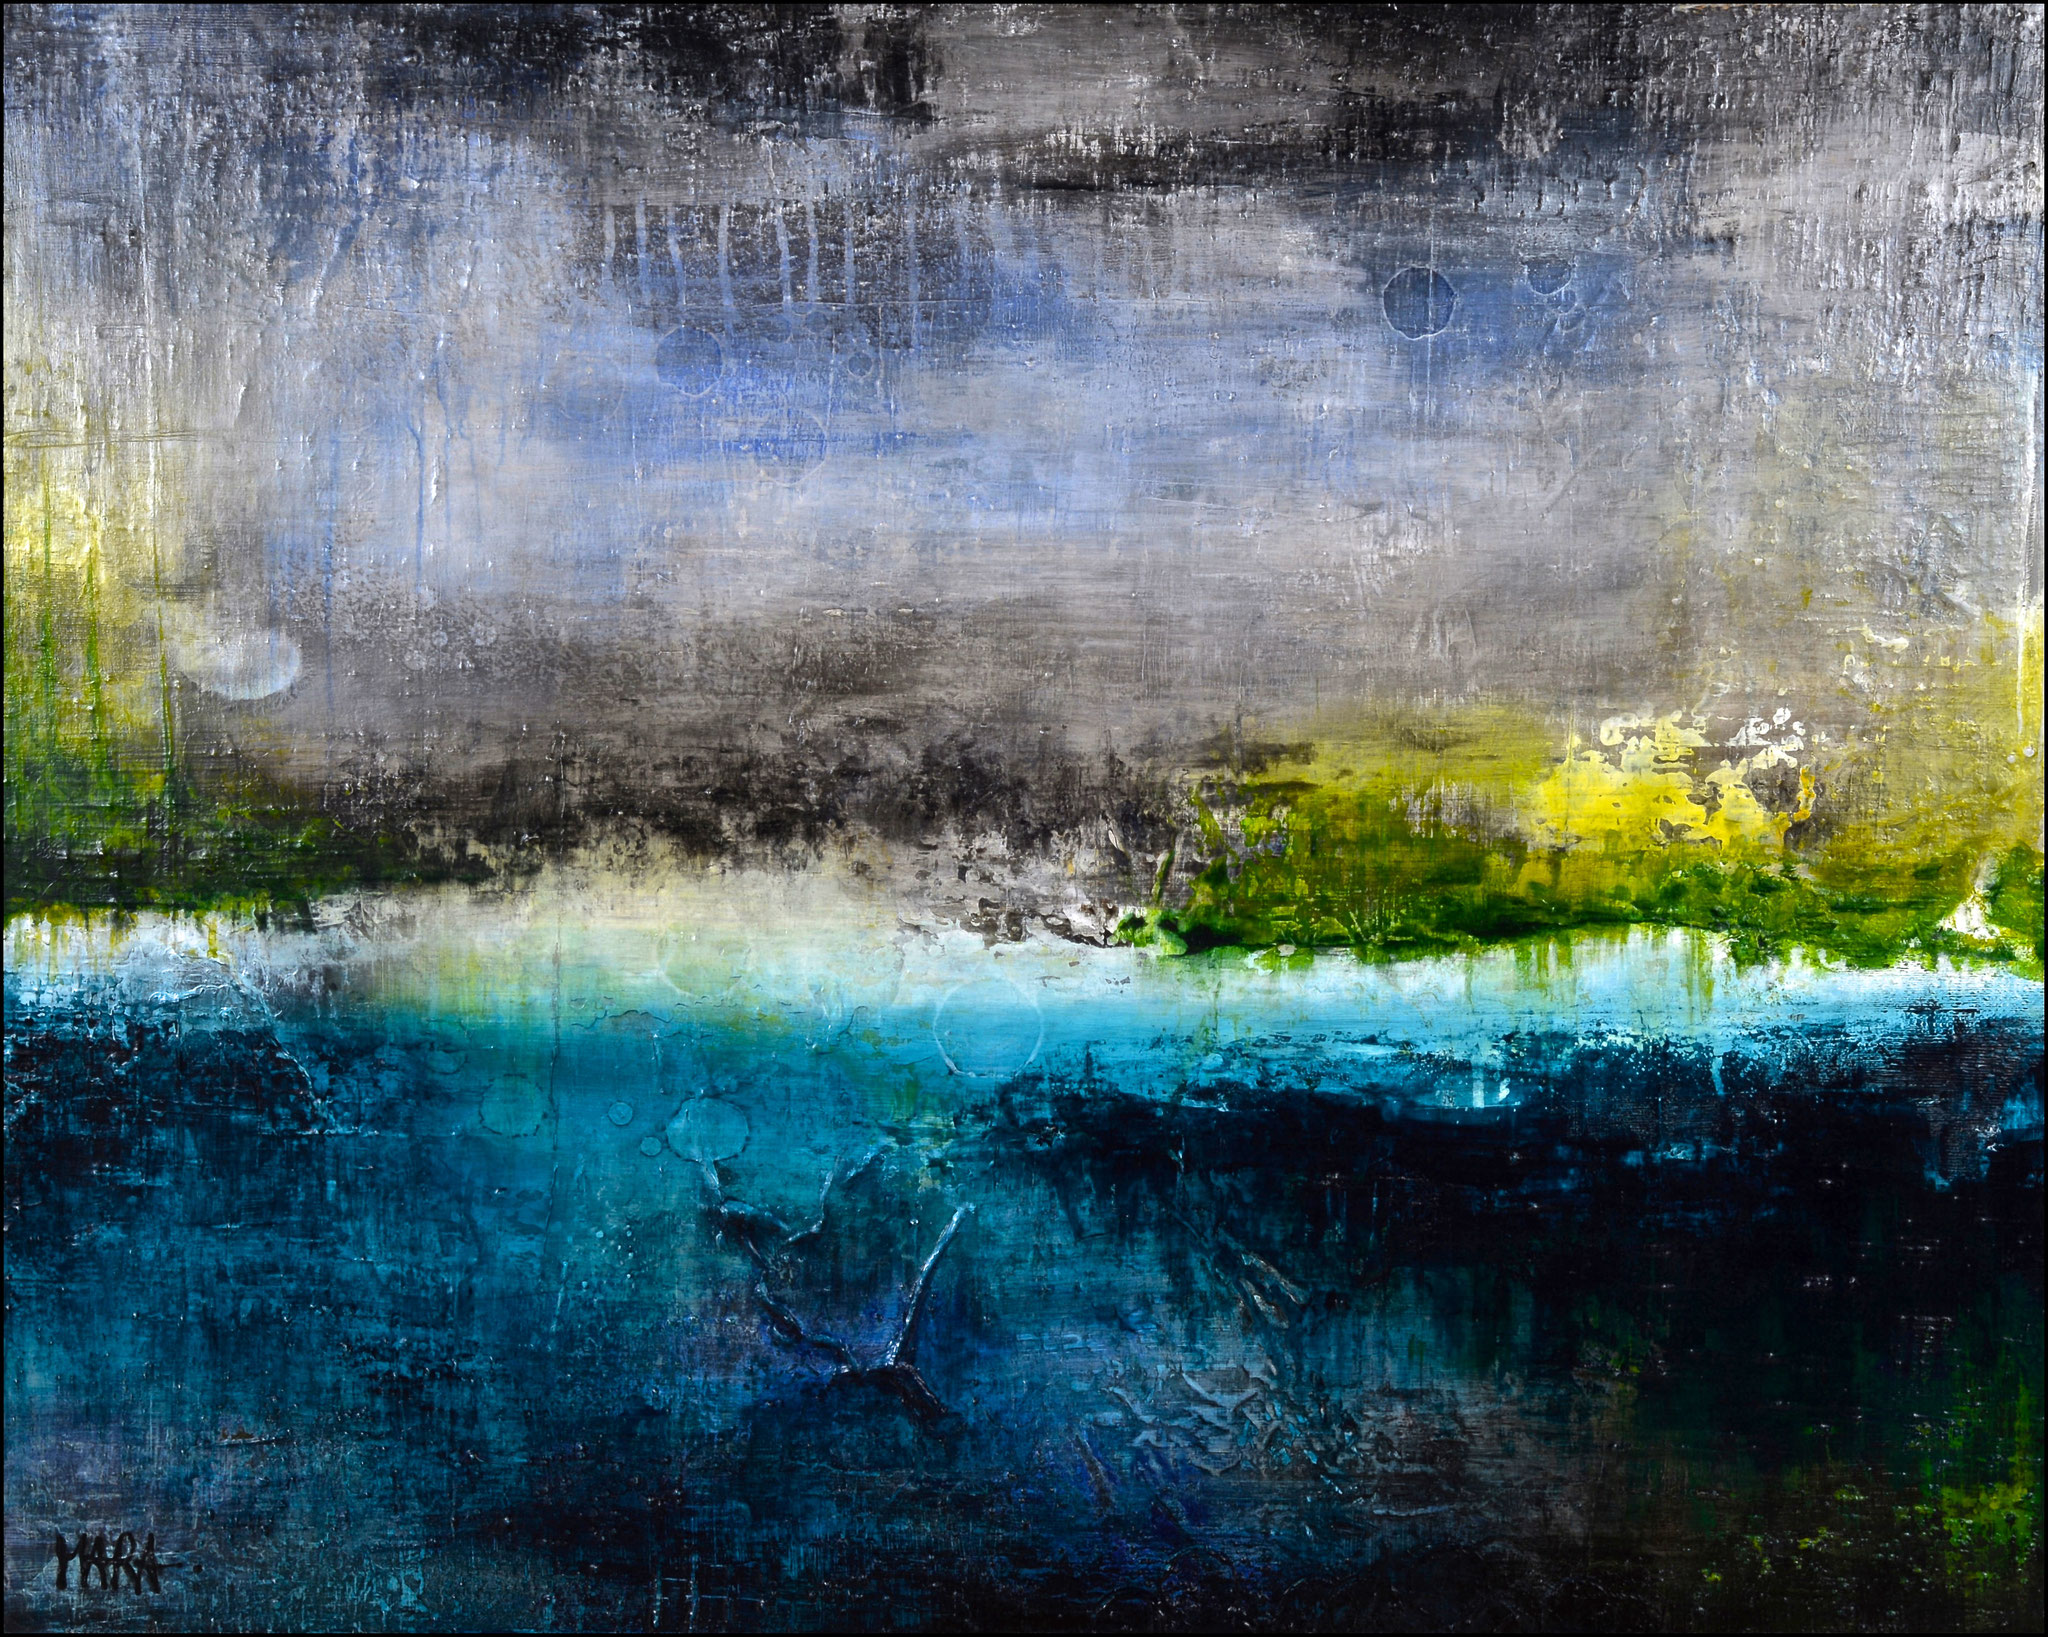 Clearness - 80x100 cm - sold